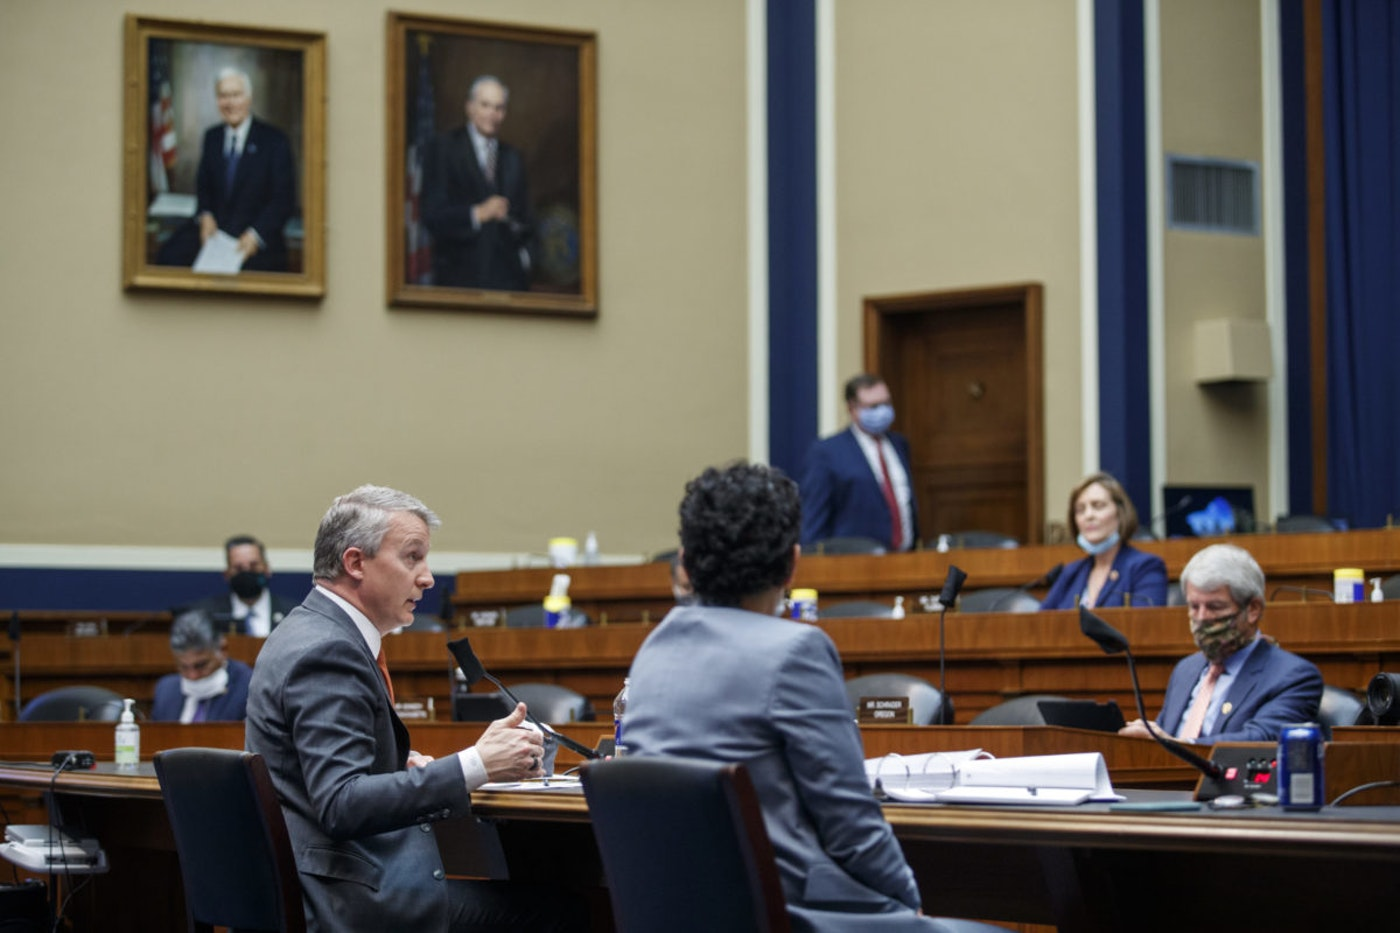 Bright testifies before a House Energy and Commerce Subcommittee on Health  Thursday, May 14, 2020, on Capitol Hill in Washington. (Shawn Thew/Pool via AP)